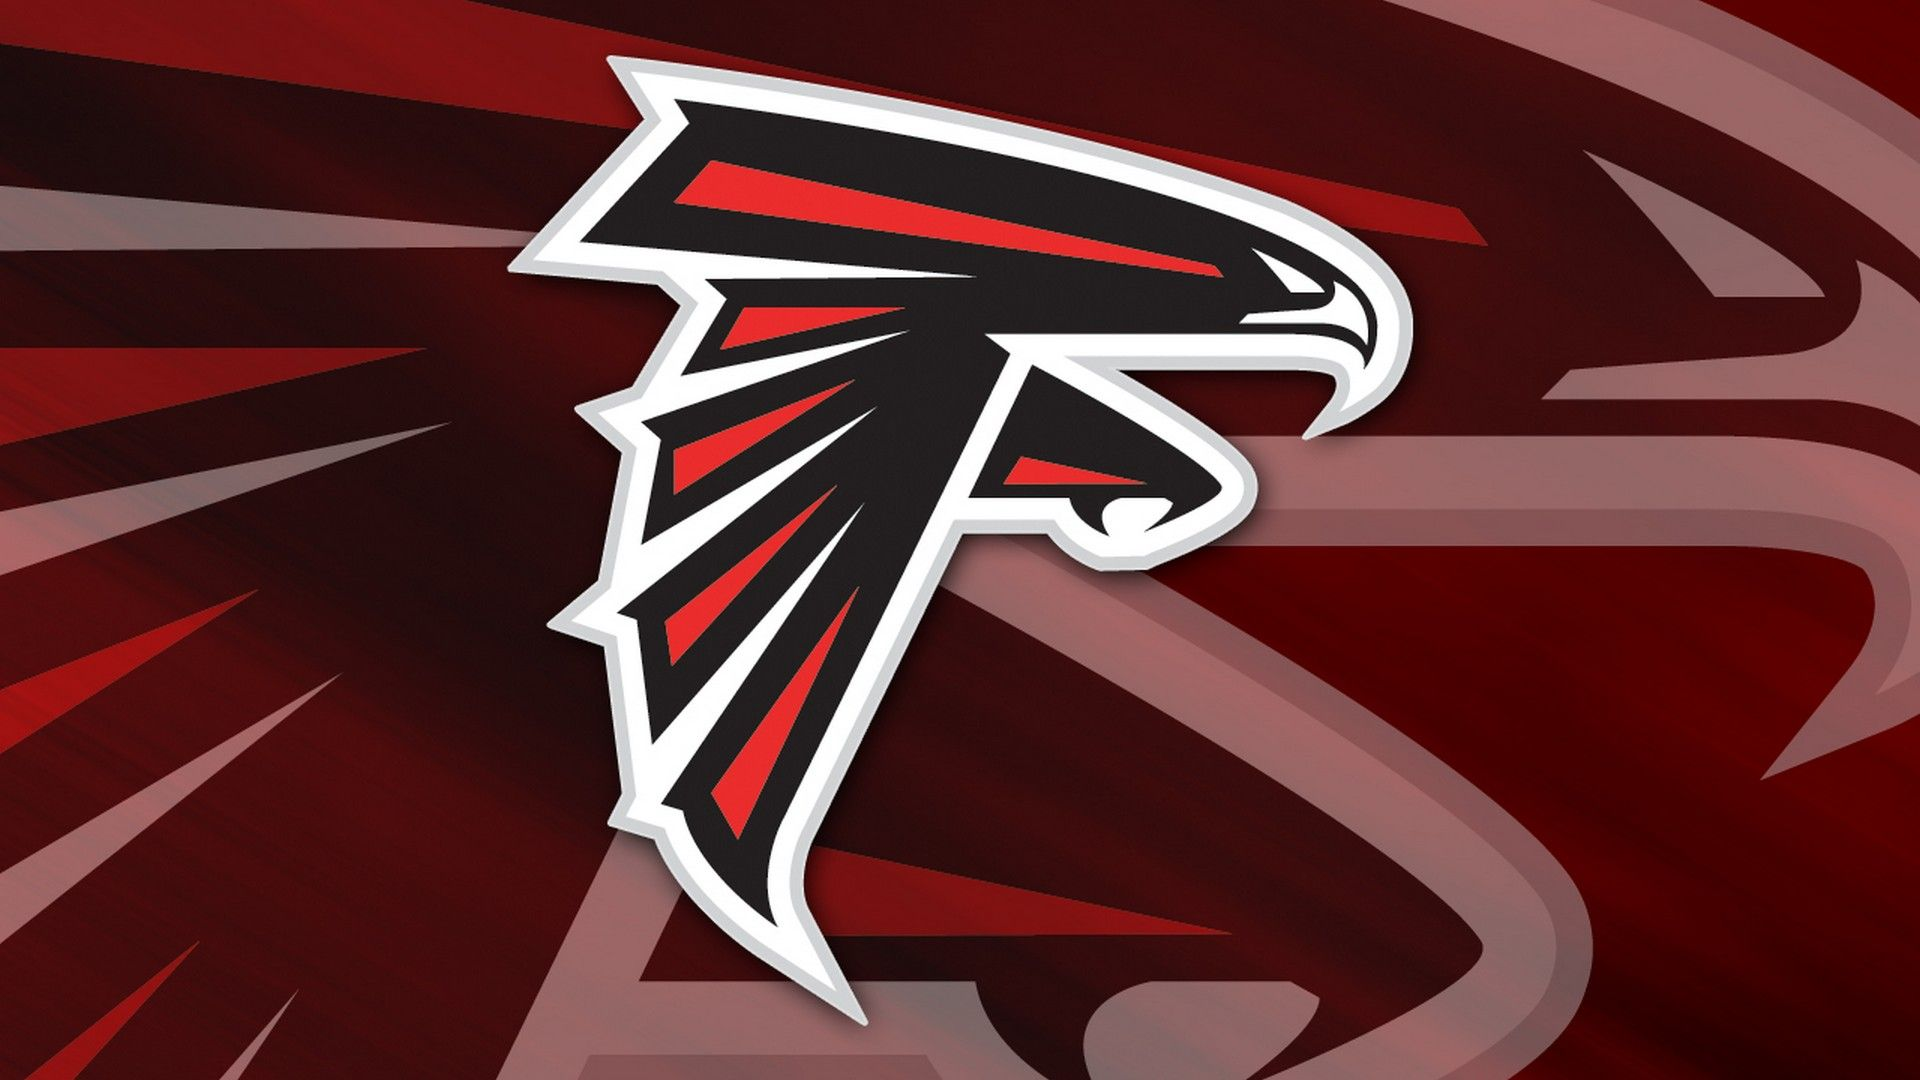 Atlanta Falcons Wallpaper Hd 2020 Nfl Football Wallpapers Atlanta Falcons Logo Atlanta Falcons Football Atlanta Falcons Wallpaper